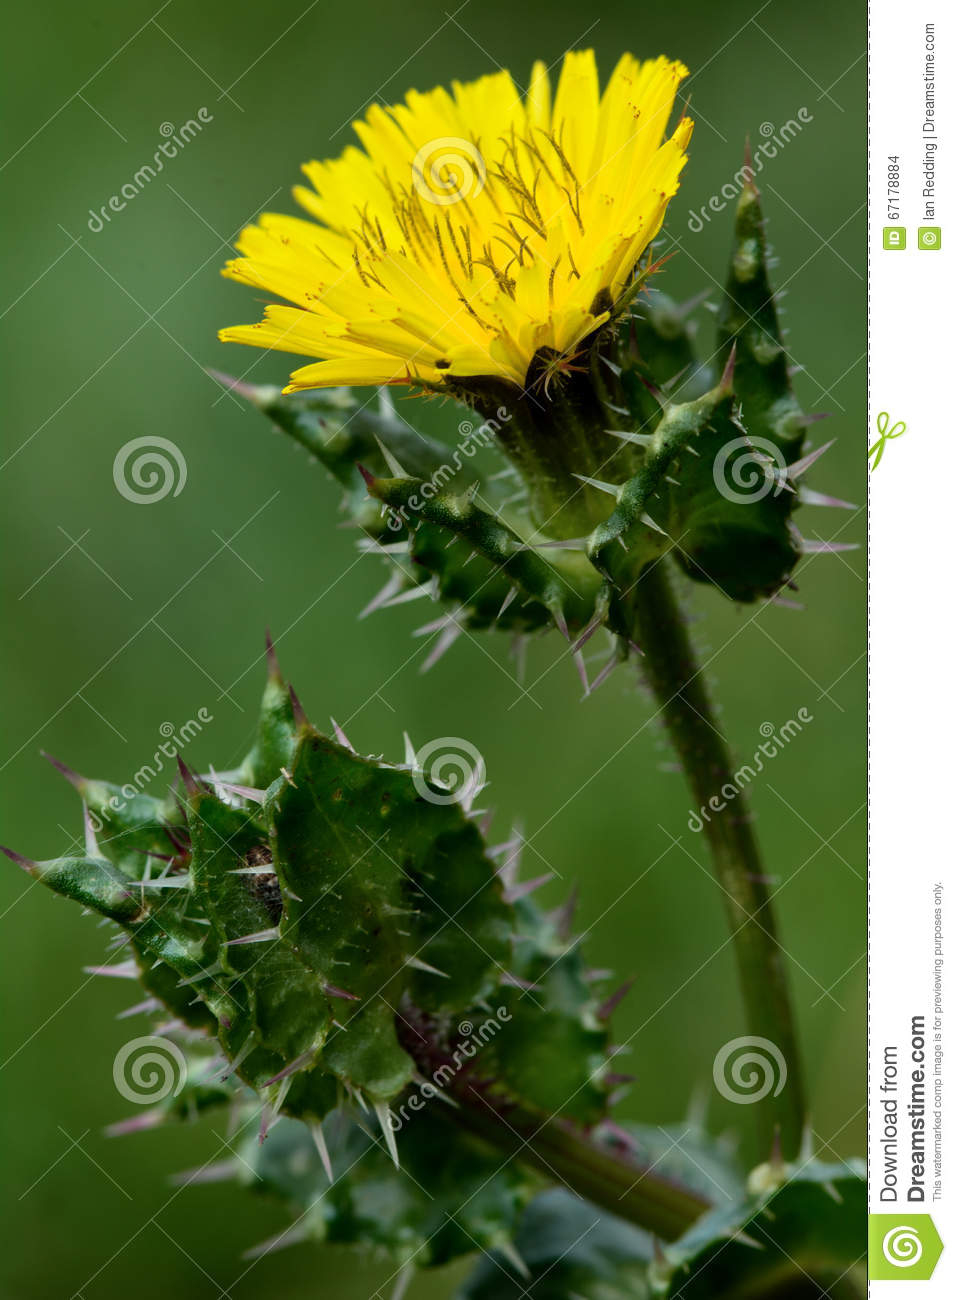 Bristly oxtongue picris echioides stock photo image of picris royalty free stock photo mightylinksfo Gallery